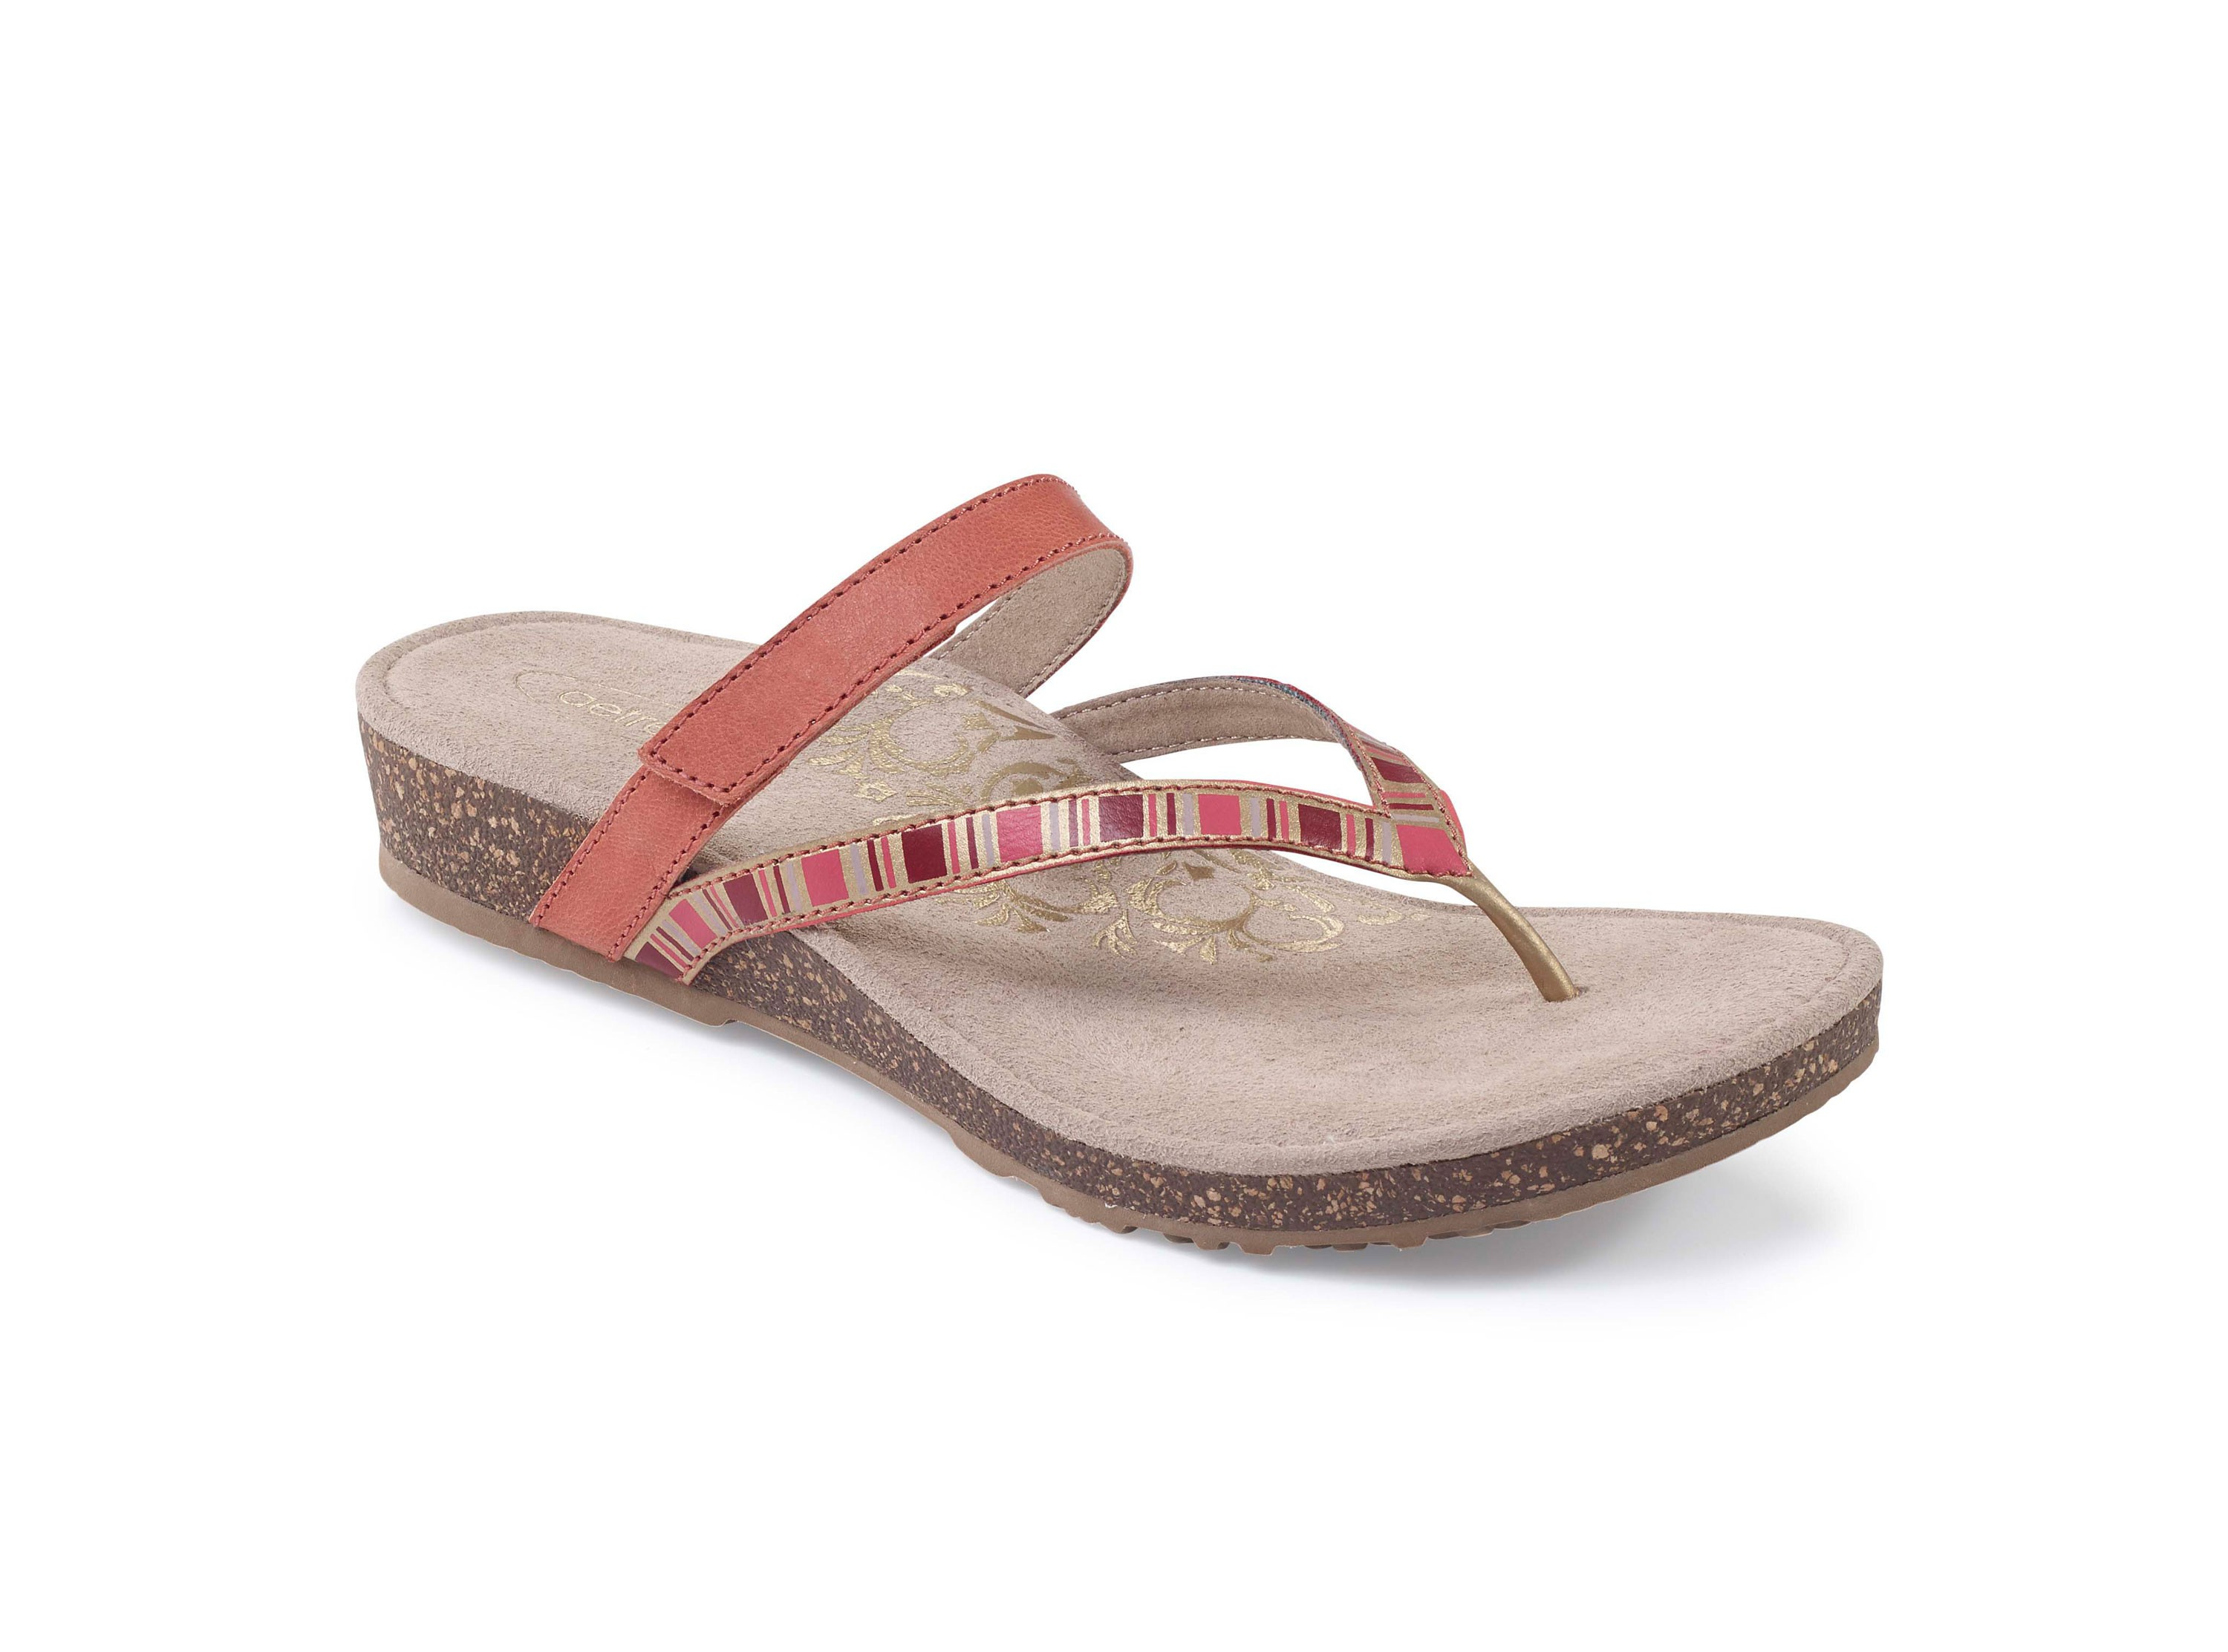 Aetrex Women's Coral Thong Sandals, Coral, 8 B US by Aetrex